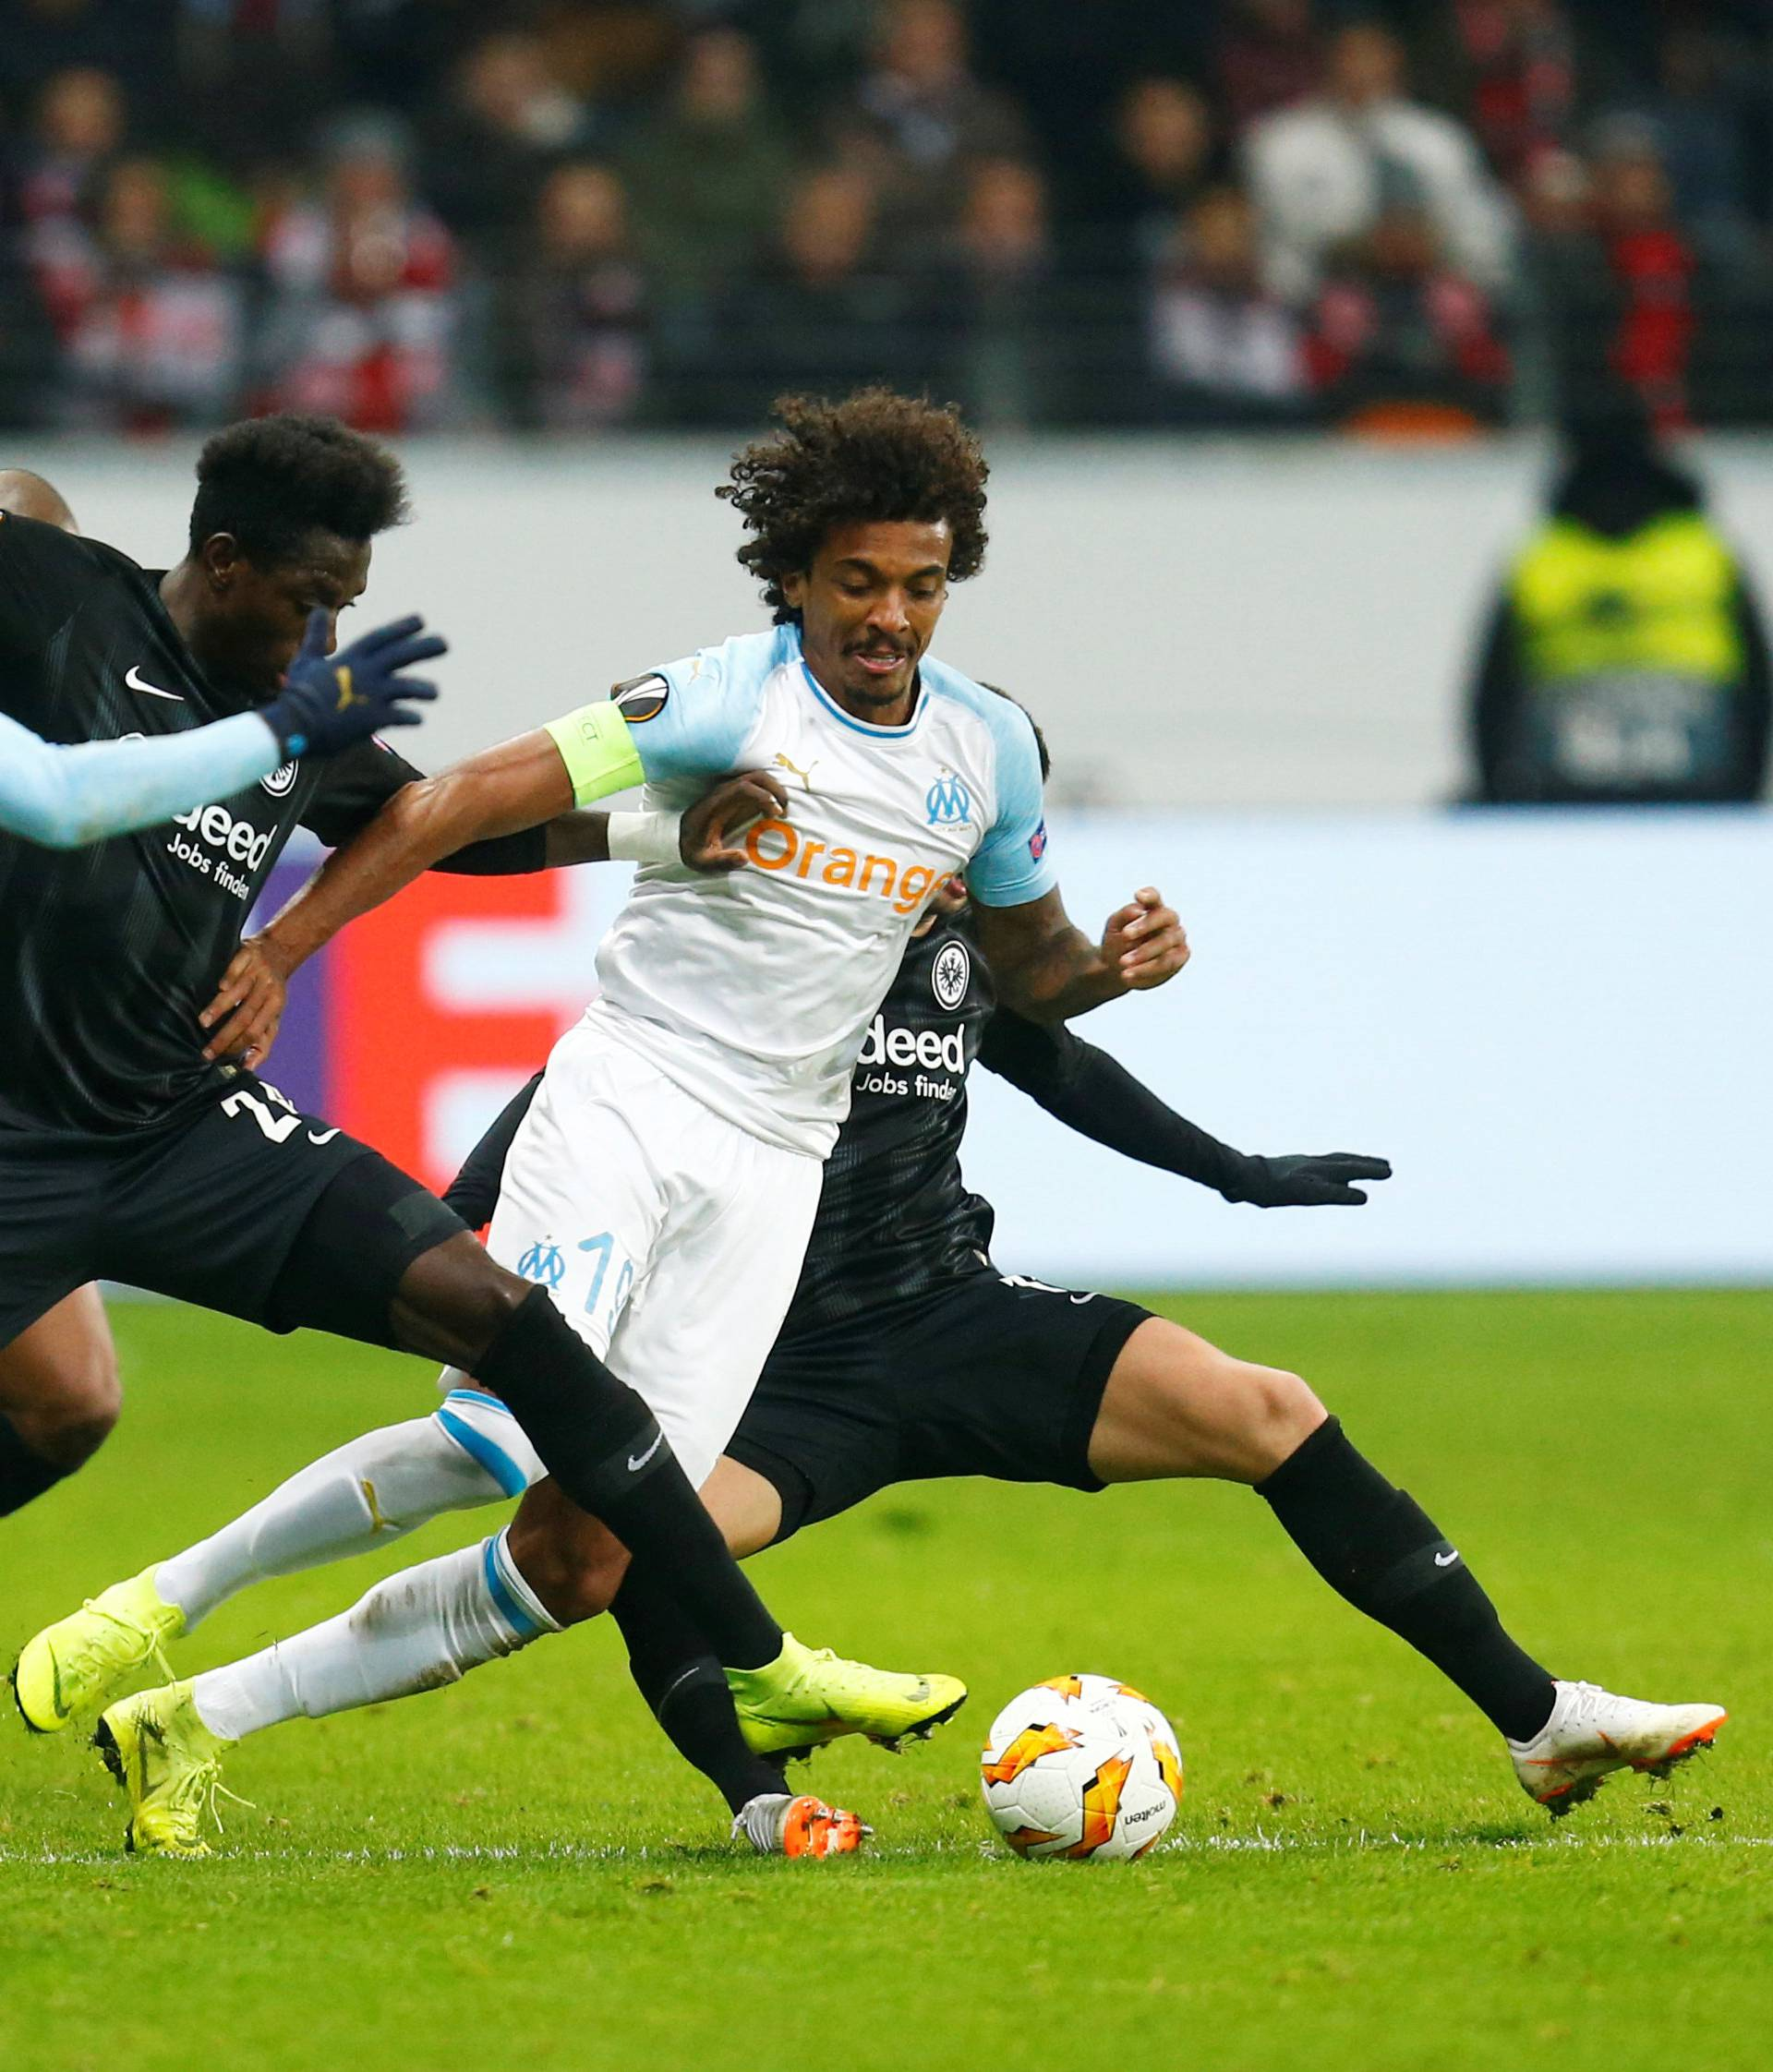 Europa League - Group Stage - Group H - Eintracht Frankfurt v Olympique de Marseille